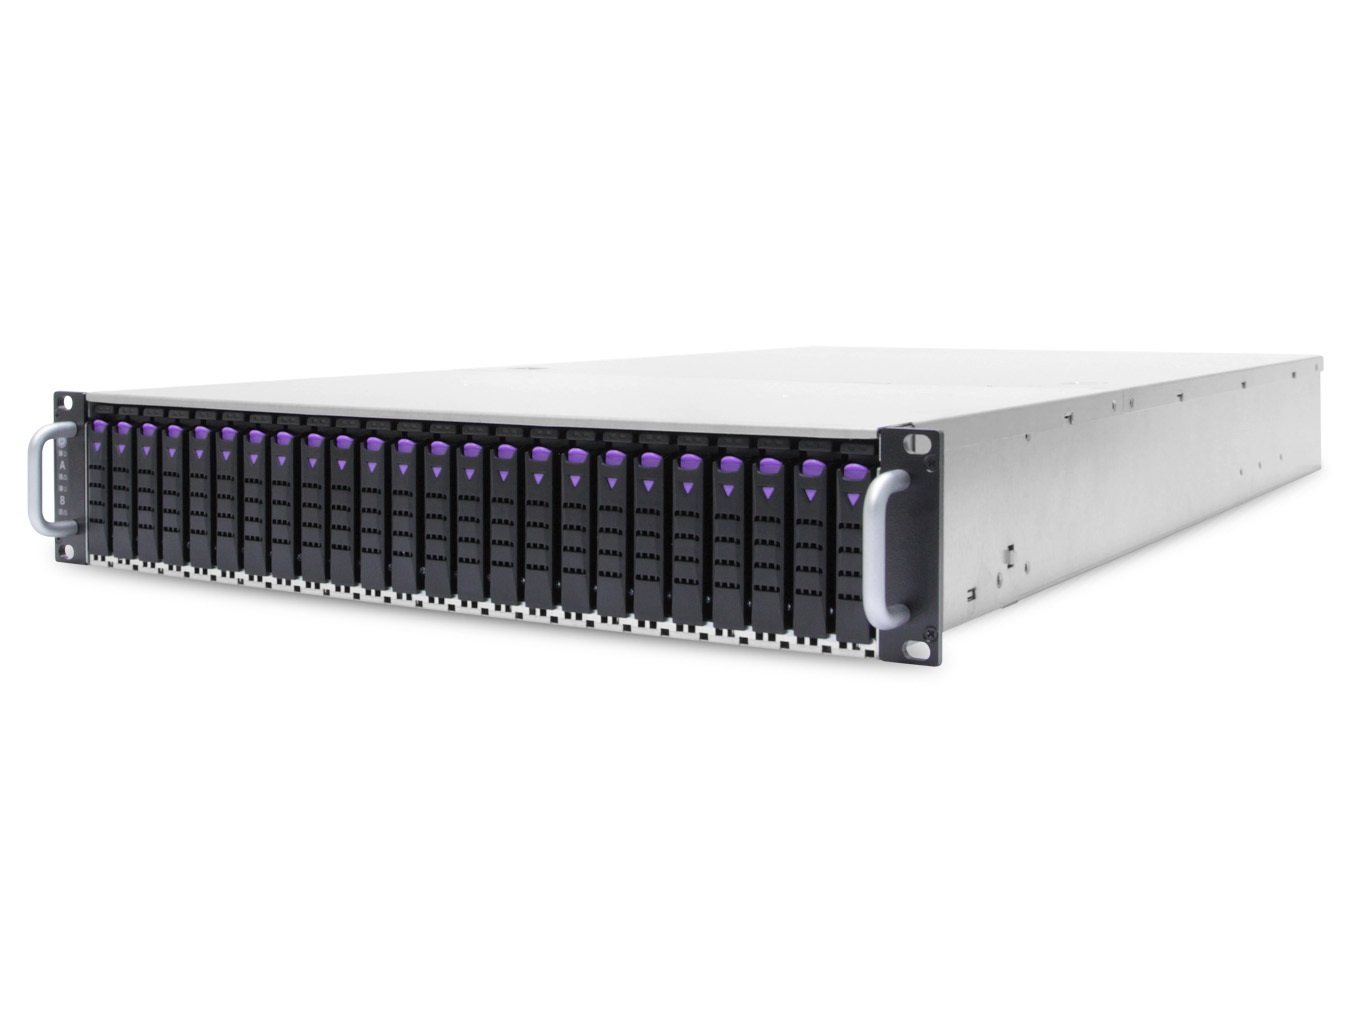 AIC HA202-PH XP1-A202PH02 2U 24-Bay NVMe Storage Server